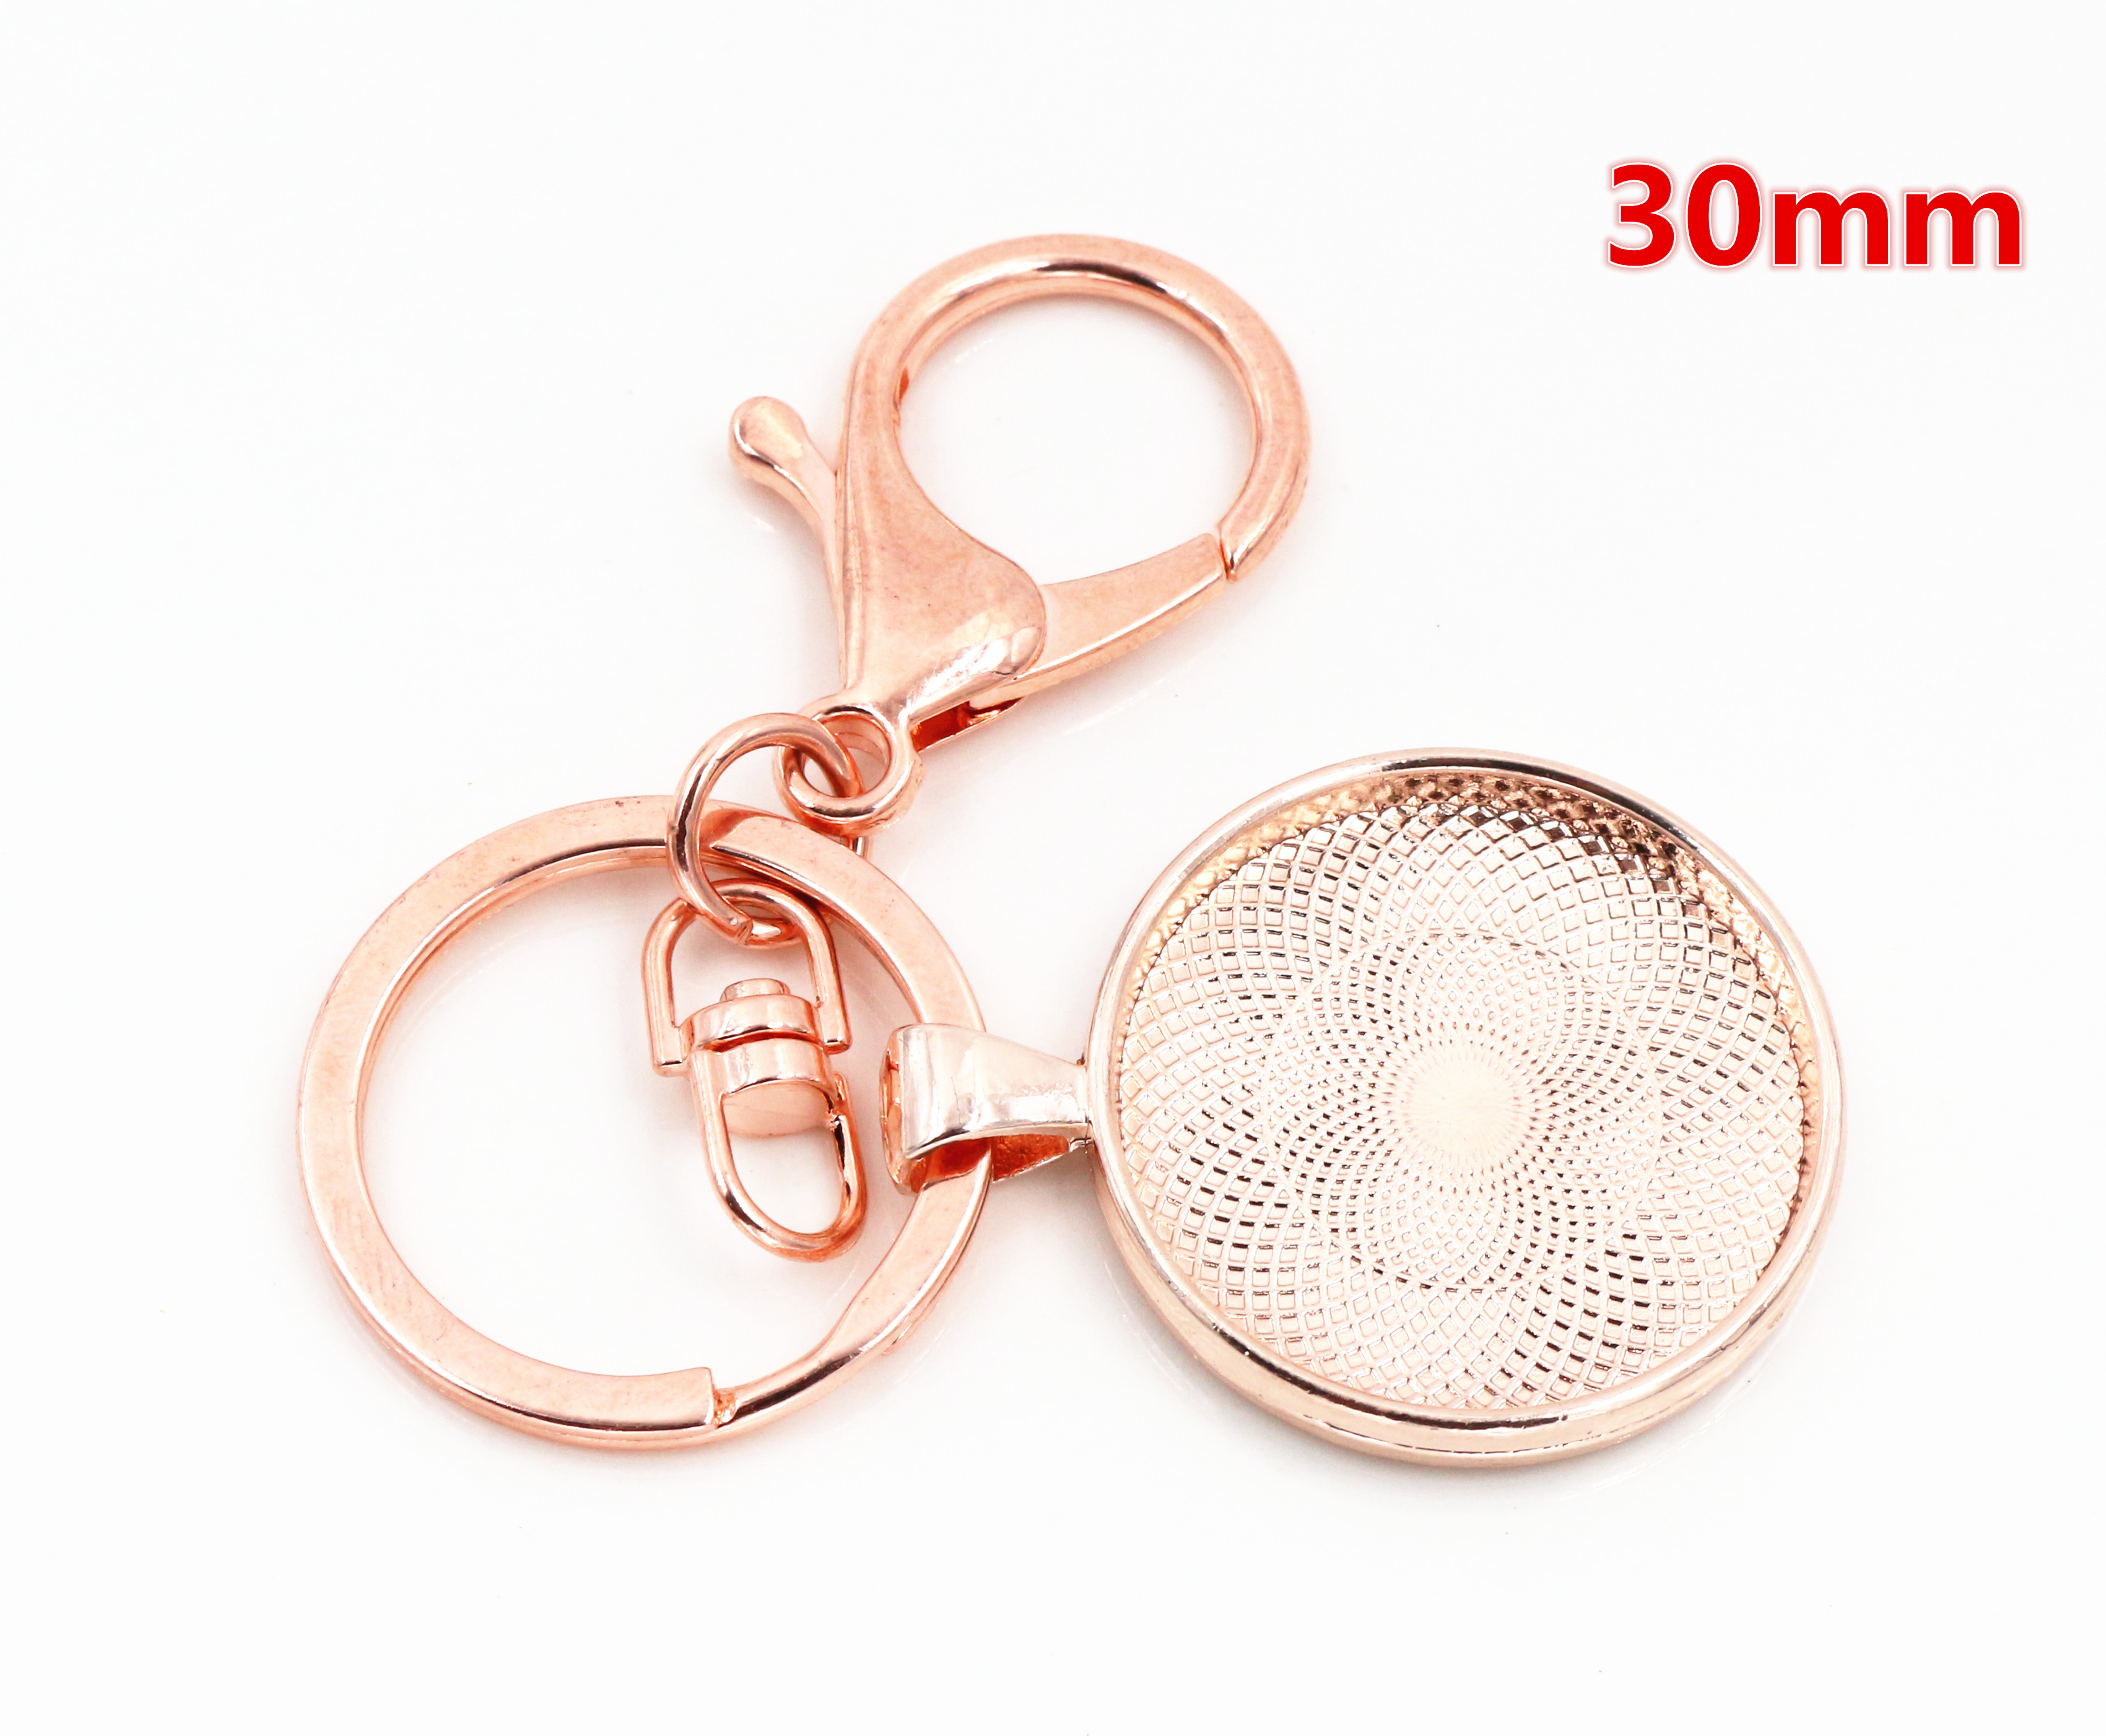 2pcs 30mm Inner Size Rose Gold Color Cameo Setting Base;Handmade Cameo Setting, Metal Key Chains Accessor (SG-B7-12)